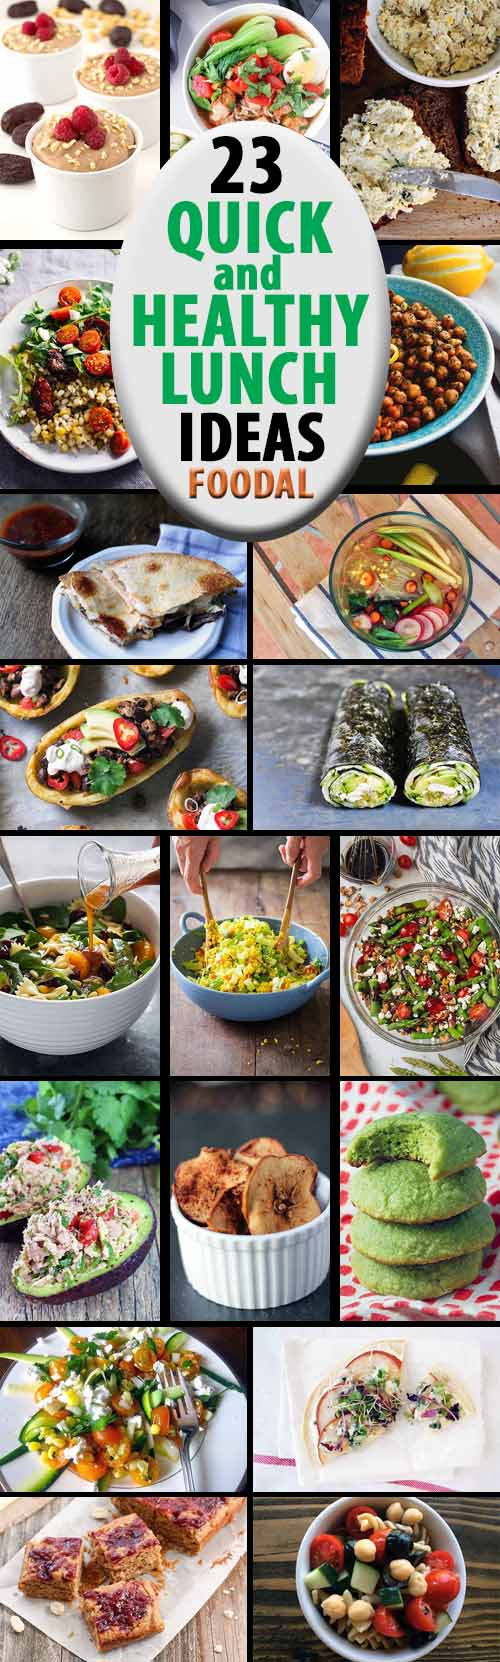 23 quick and healthy lunch ideas foodal